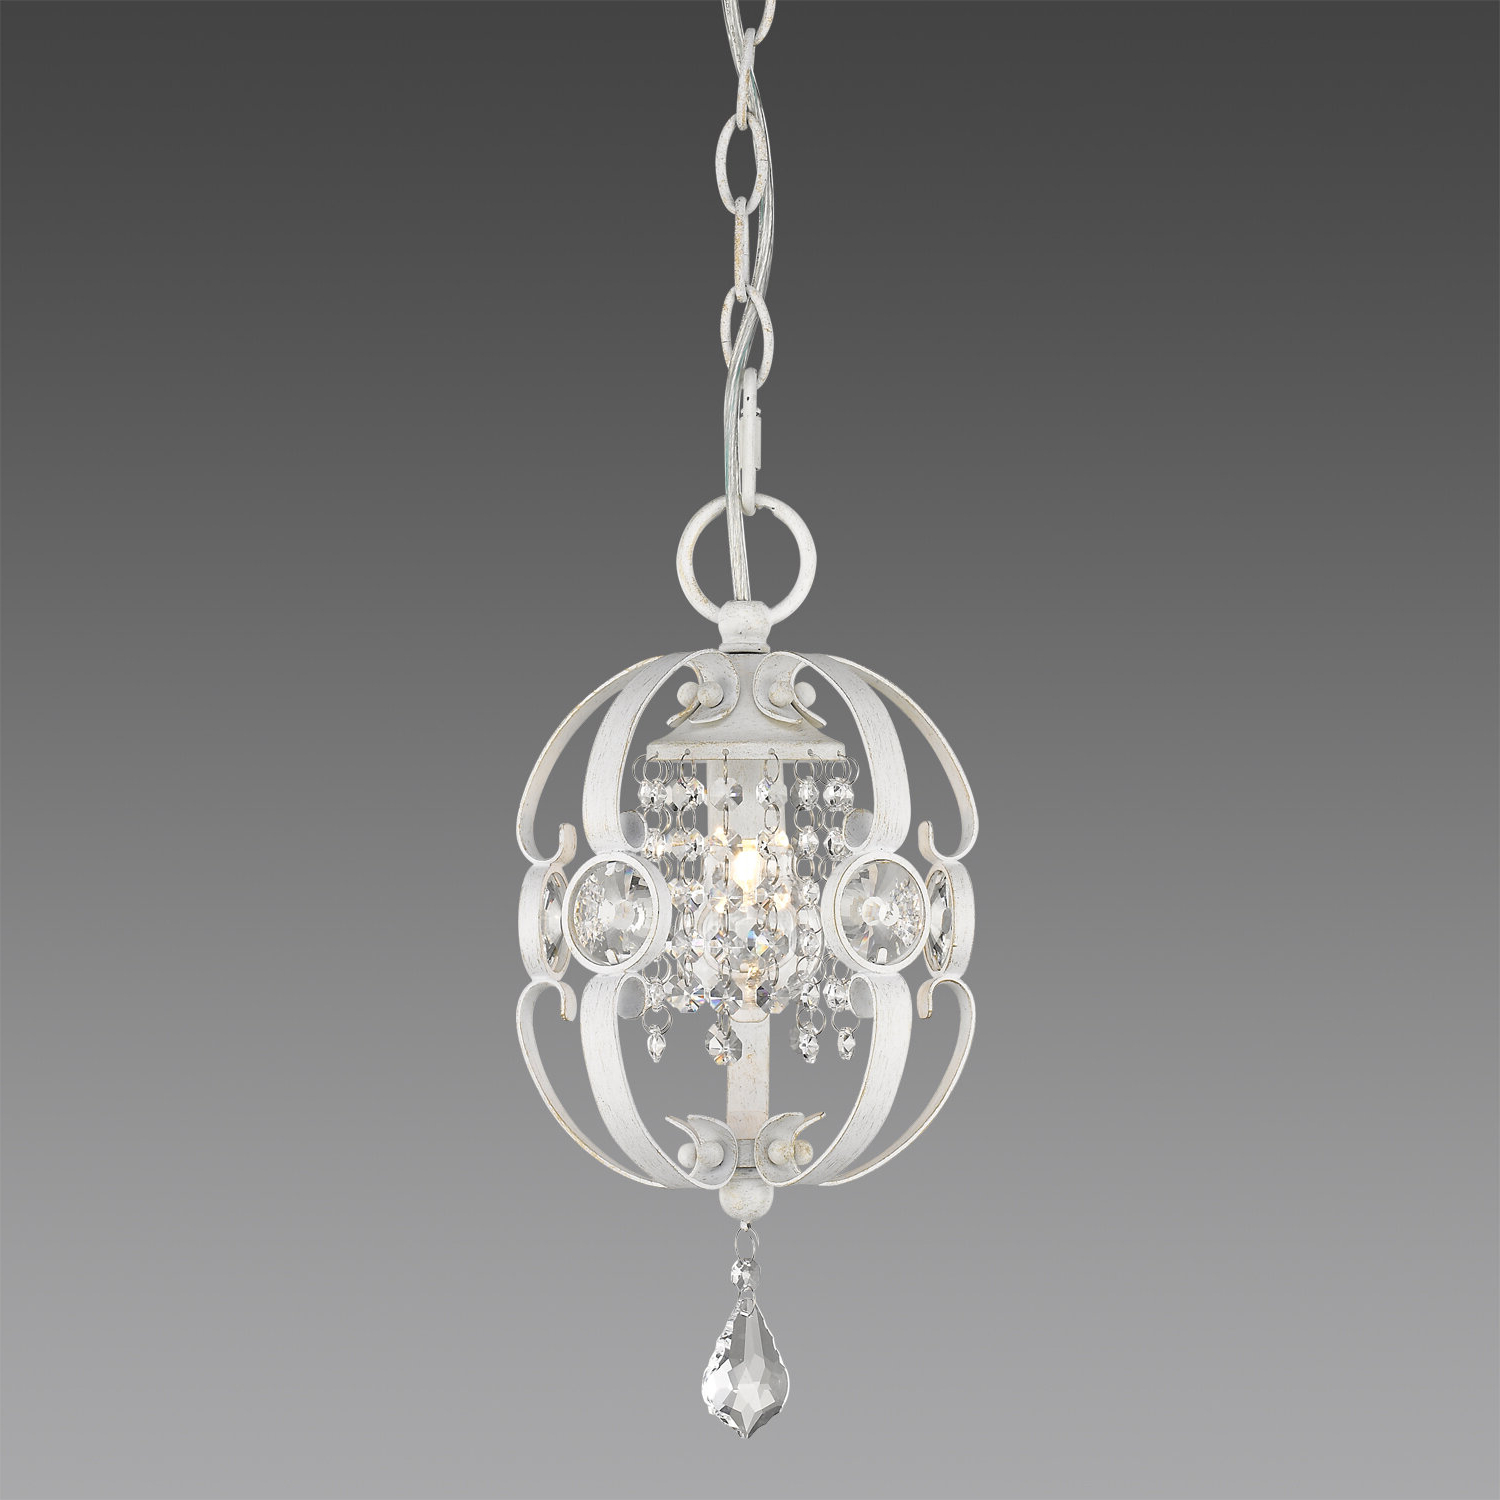 Hardouin 1 Light Single Geometric Pendant Intended For Preferred Spokane 1 Light Single Urn Pendants (View 12 of 20)